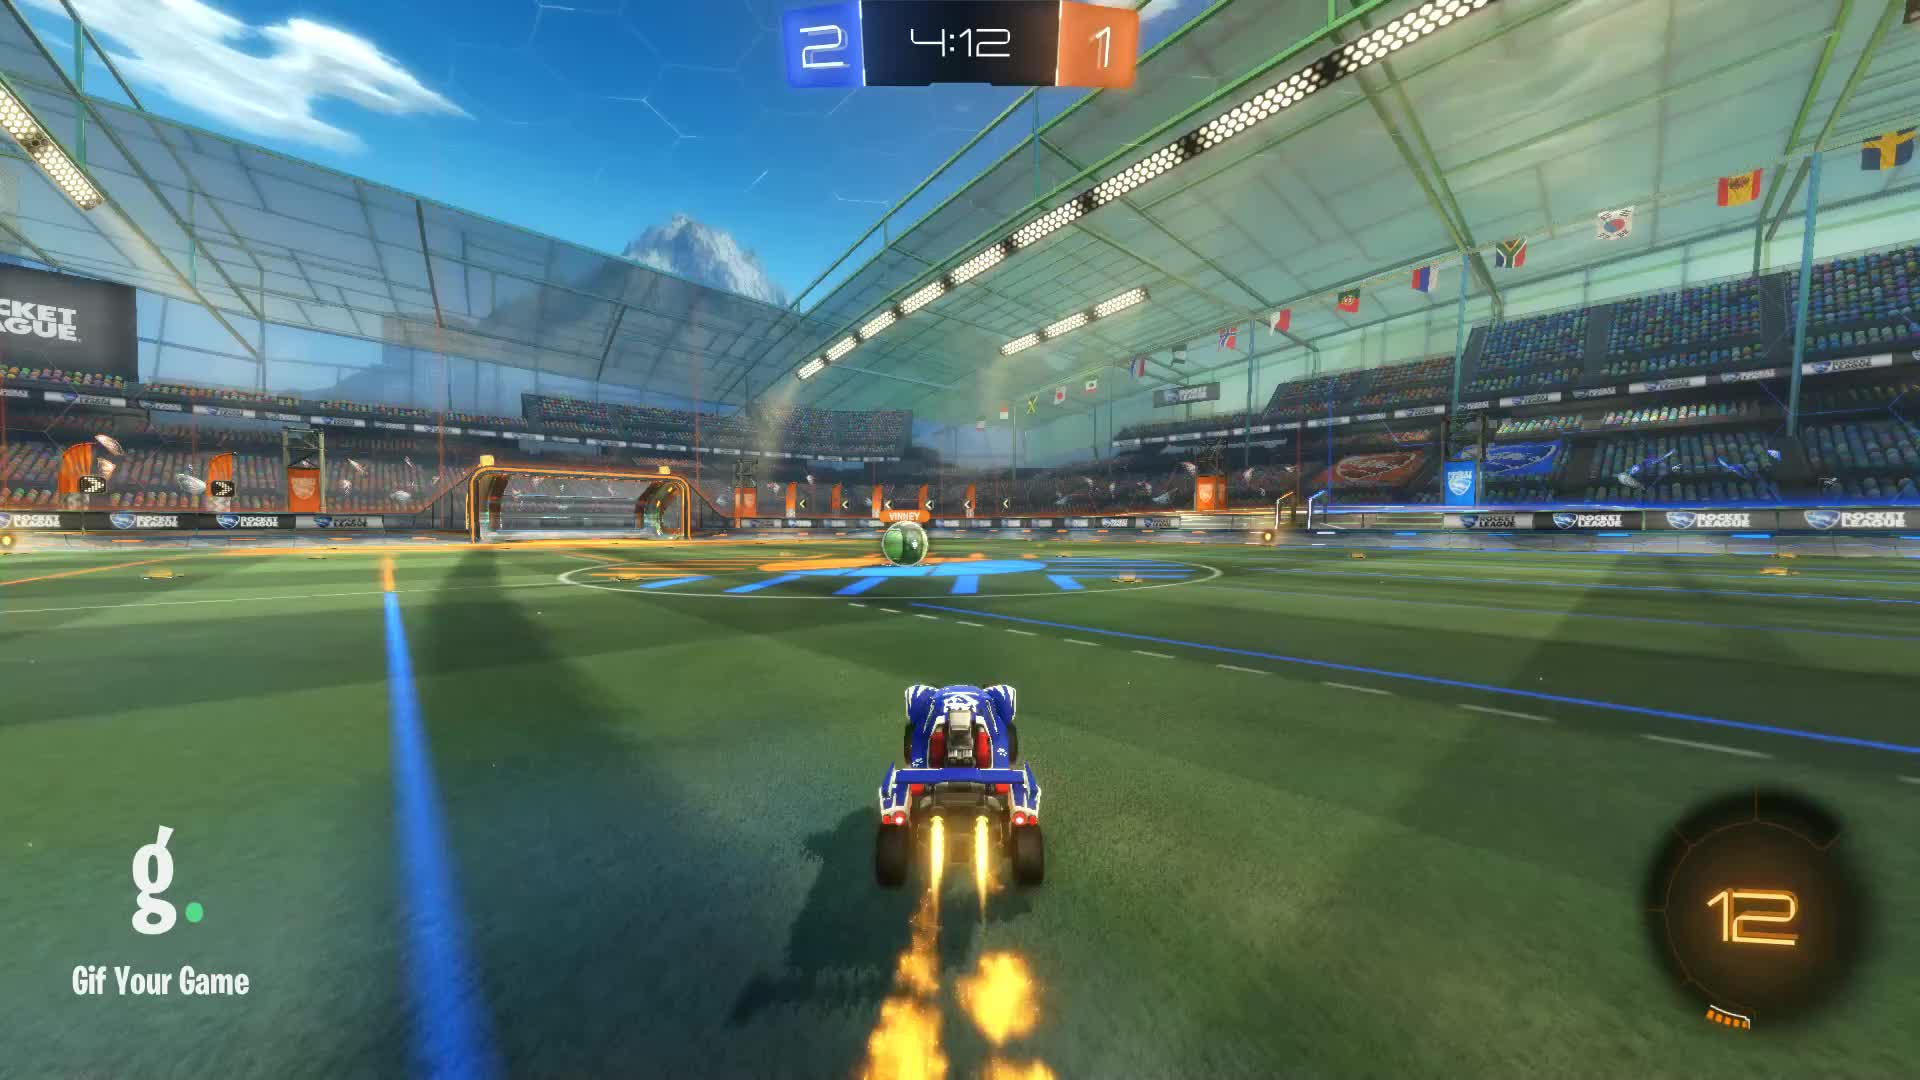 Drippy, Gif Your Game, GifYourGame, Goal, Rocket League, RocketLeague, Goal 4: Drippy GIFs